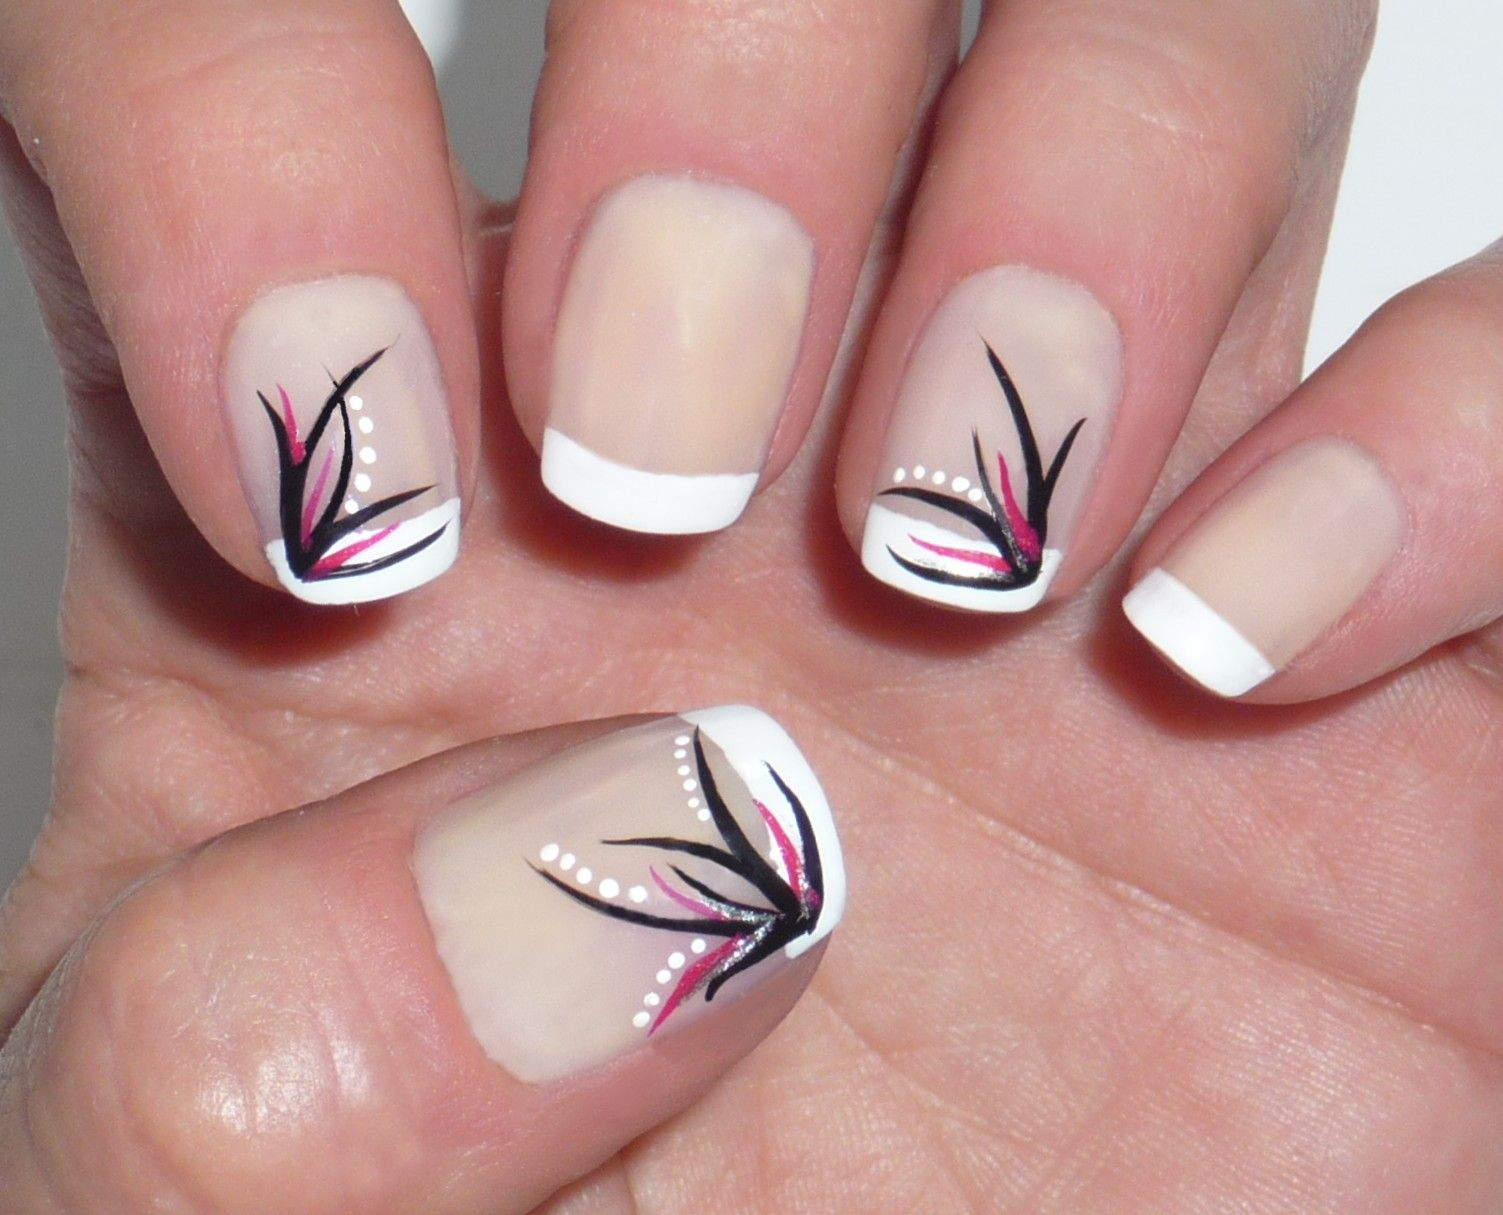 french nails - Google Search - French Nails - Google Search Nails Pinterest Party Nail Design